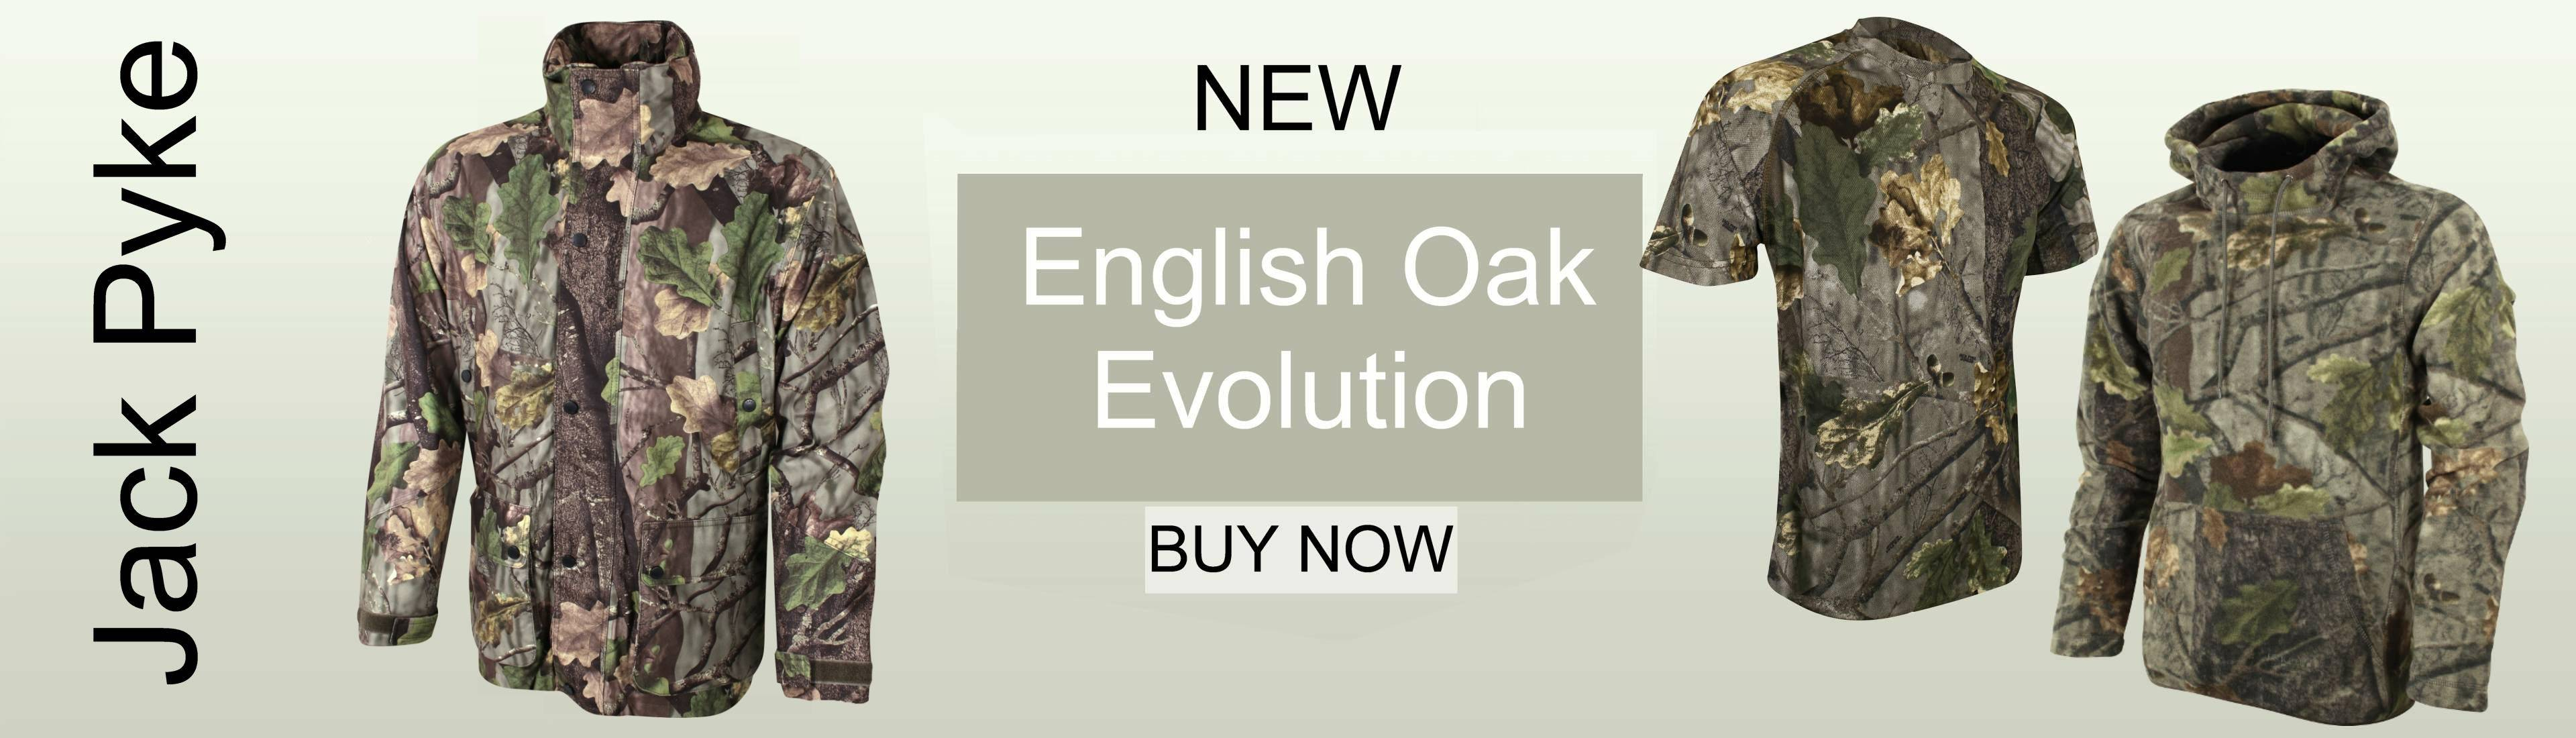 English Oak Evo